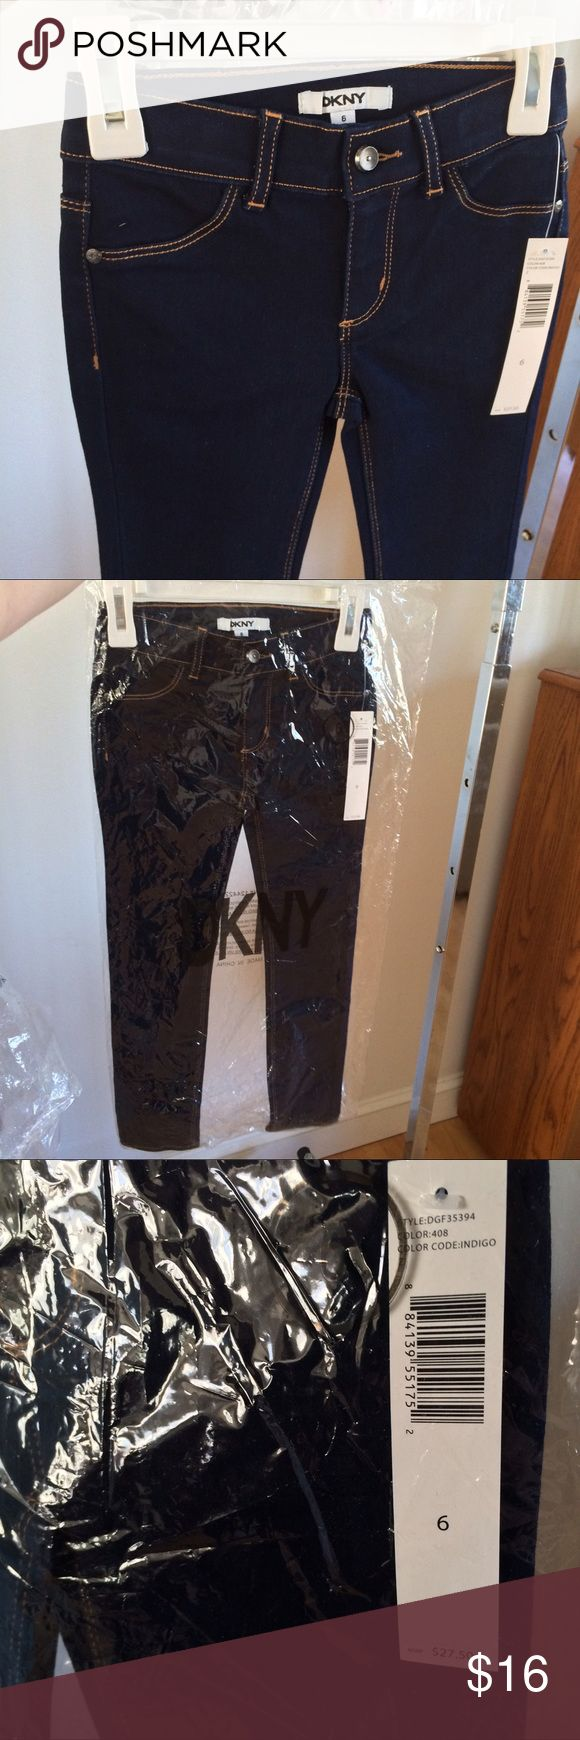 DKNY Girls Skinny Jeans, Size 6 DKNY Girls Skinny Jeans, Size 6. Boutique items are direct from manufacturer, meaning they are being sold retail for the first time here. Please bundle for an additional 10% off MSRP! DKNY Bottoms Jeans